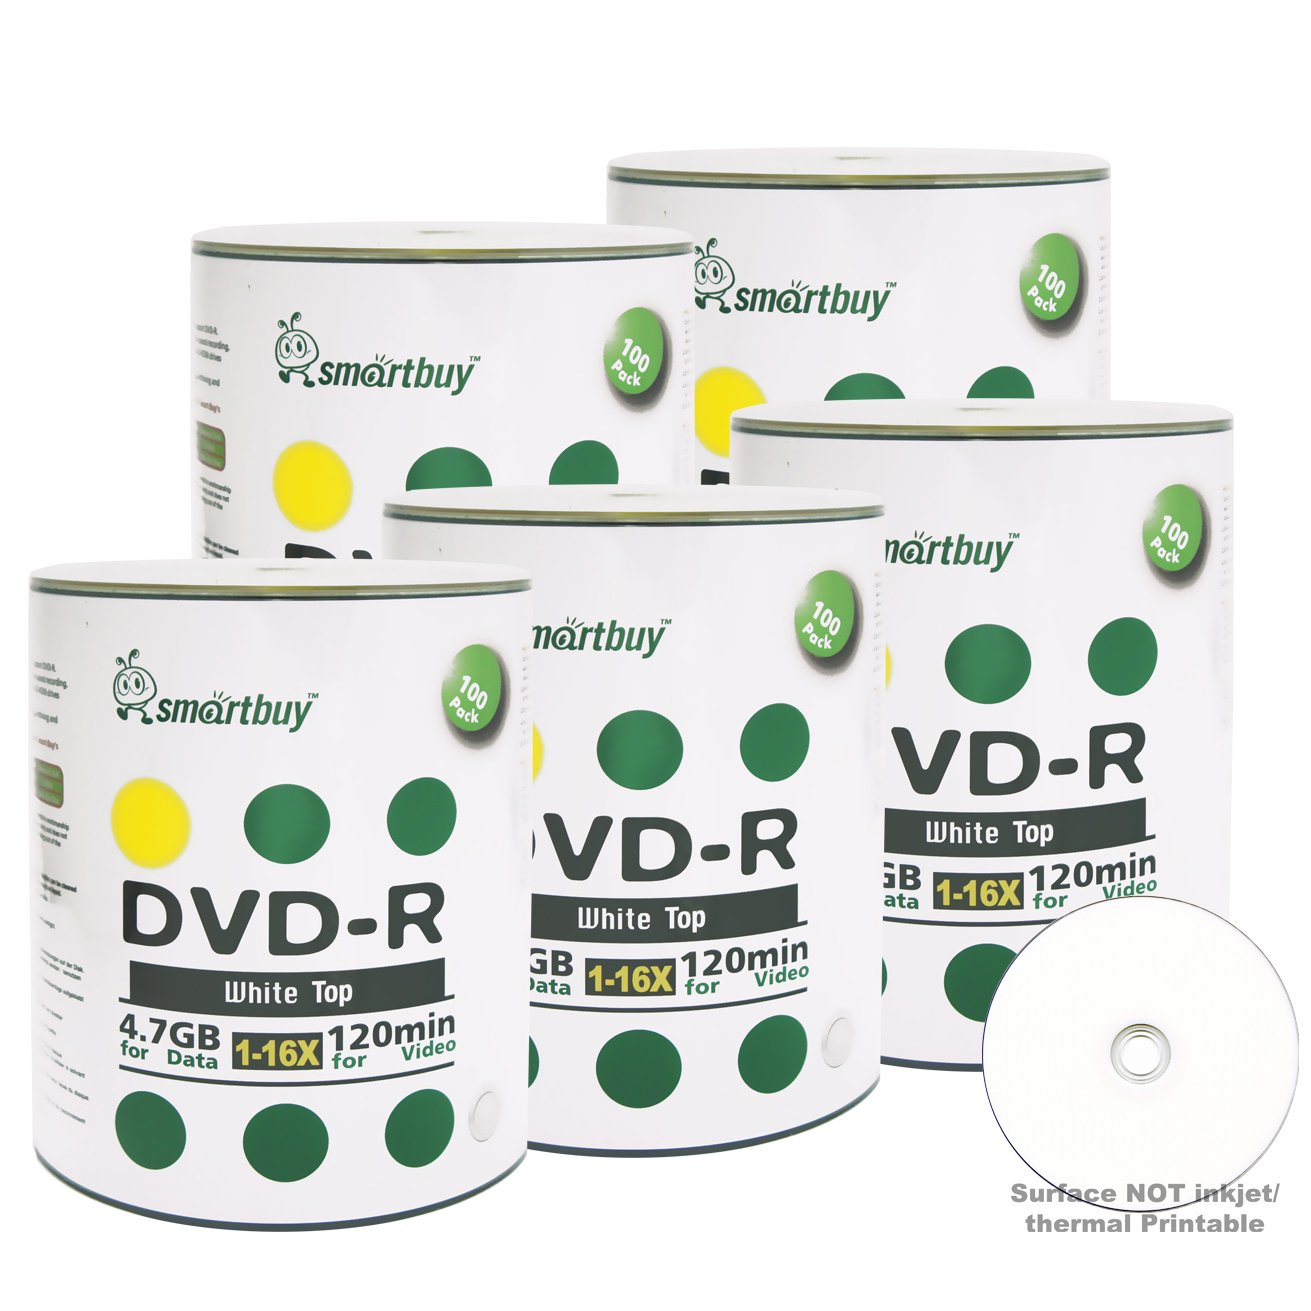 Smartbuy 500-disc 4.7gb/120min 16x DVD-R White Top Blank Data Recordable Media Disc